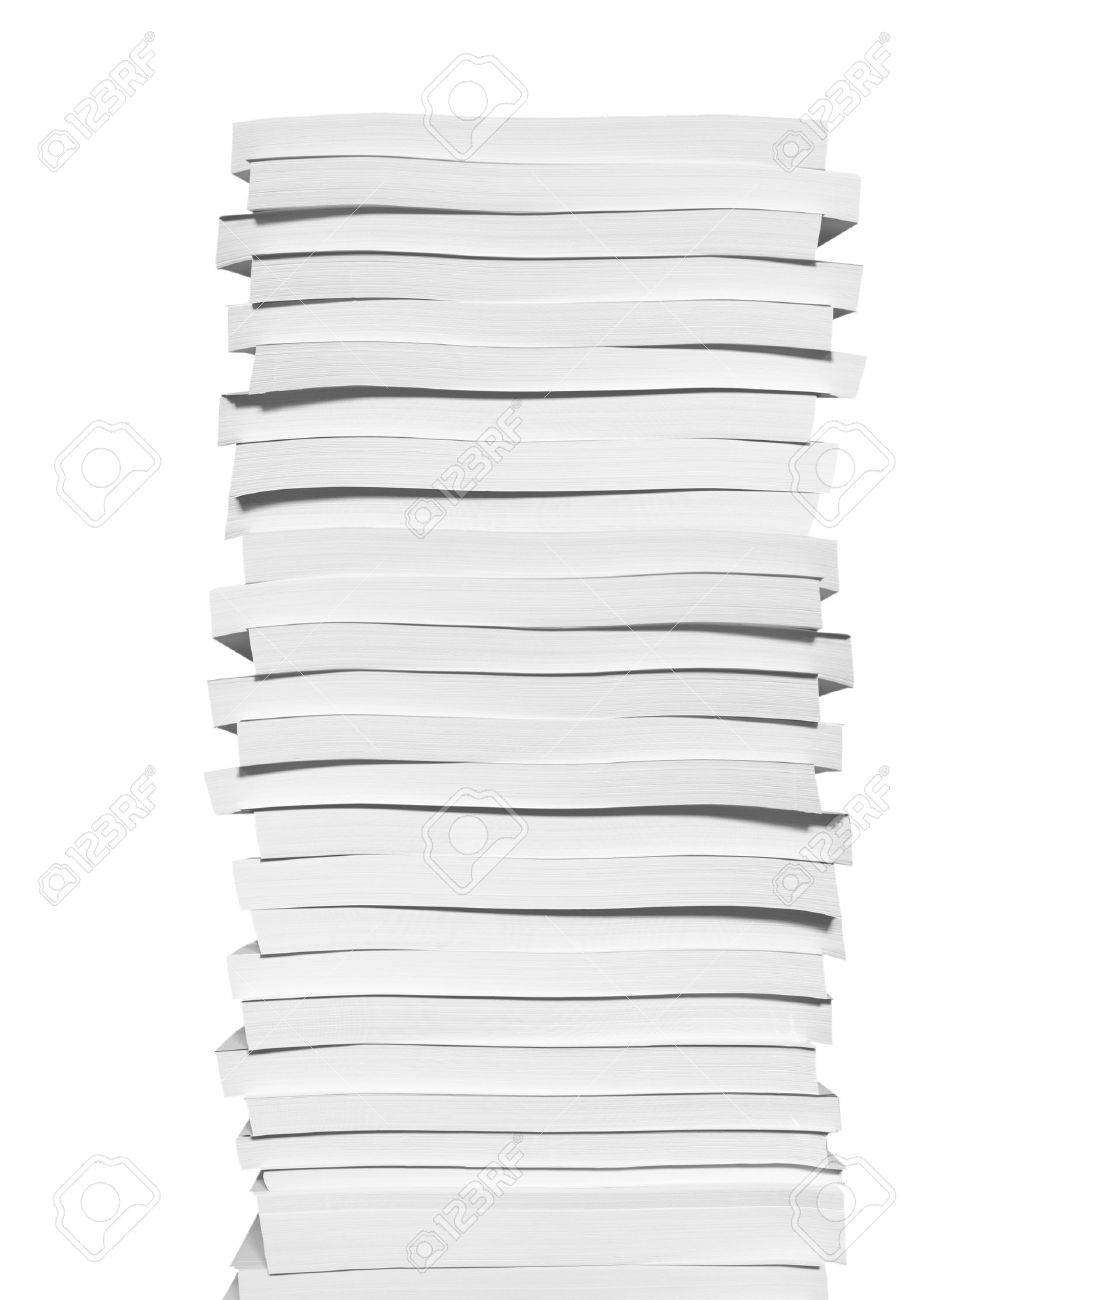 close up of stack of papers on white background stock photo, picture